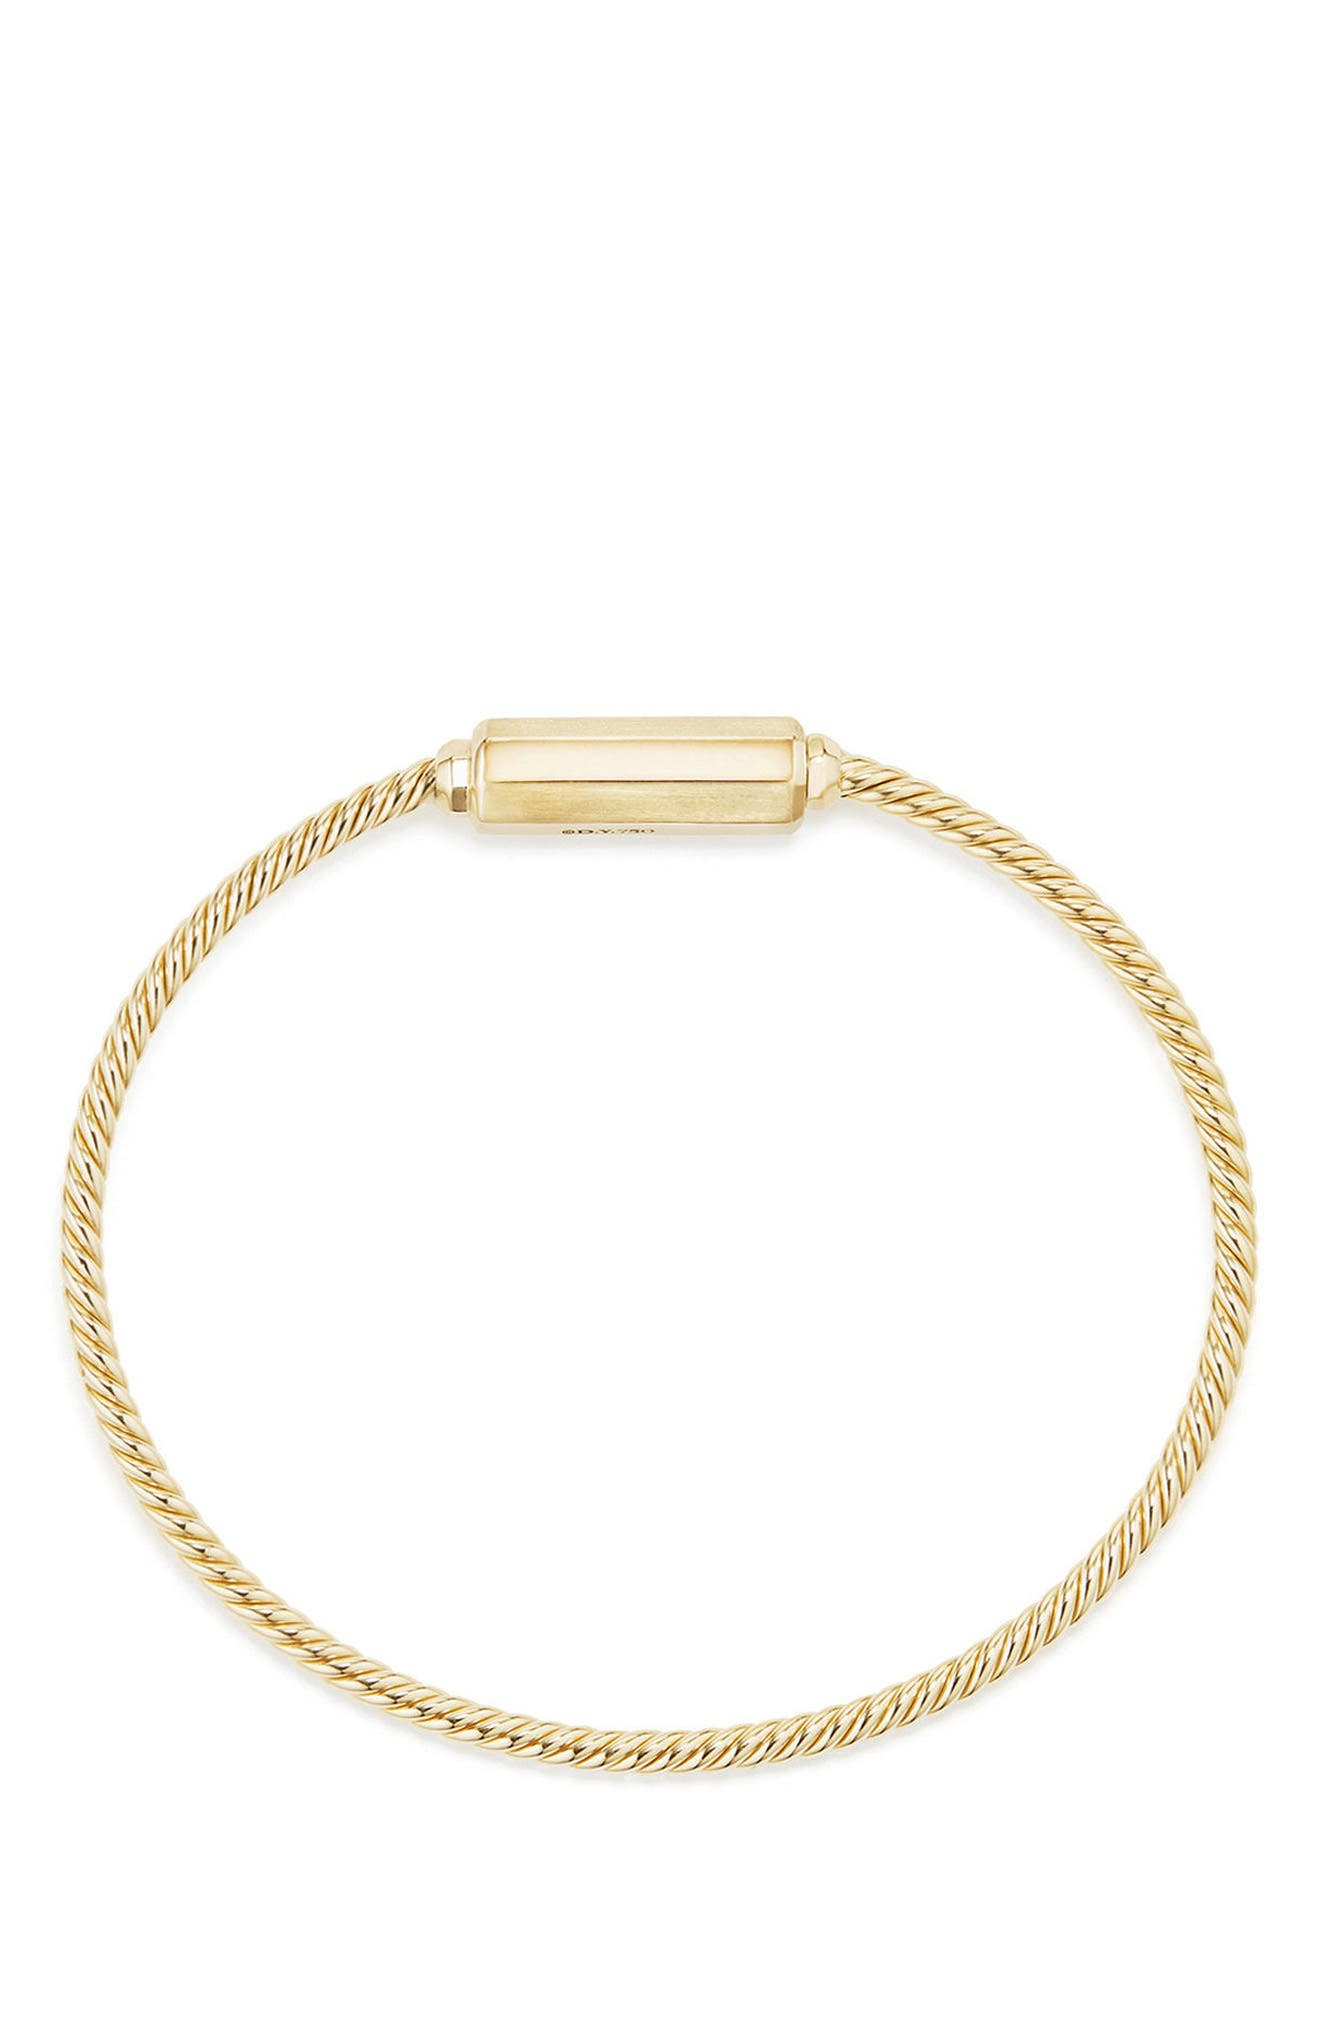 Barrels Bracelet with Diamonds in 18K Gold,                             Alternate thumbnail 2, color,                             YELLOW GOLD